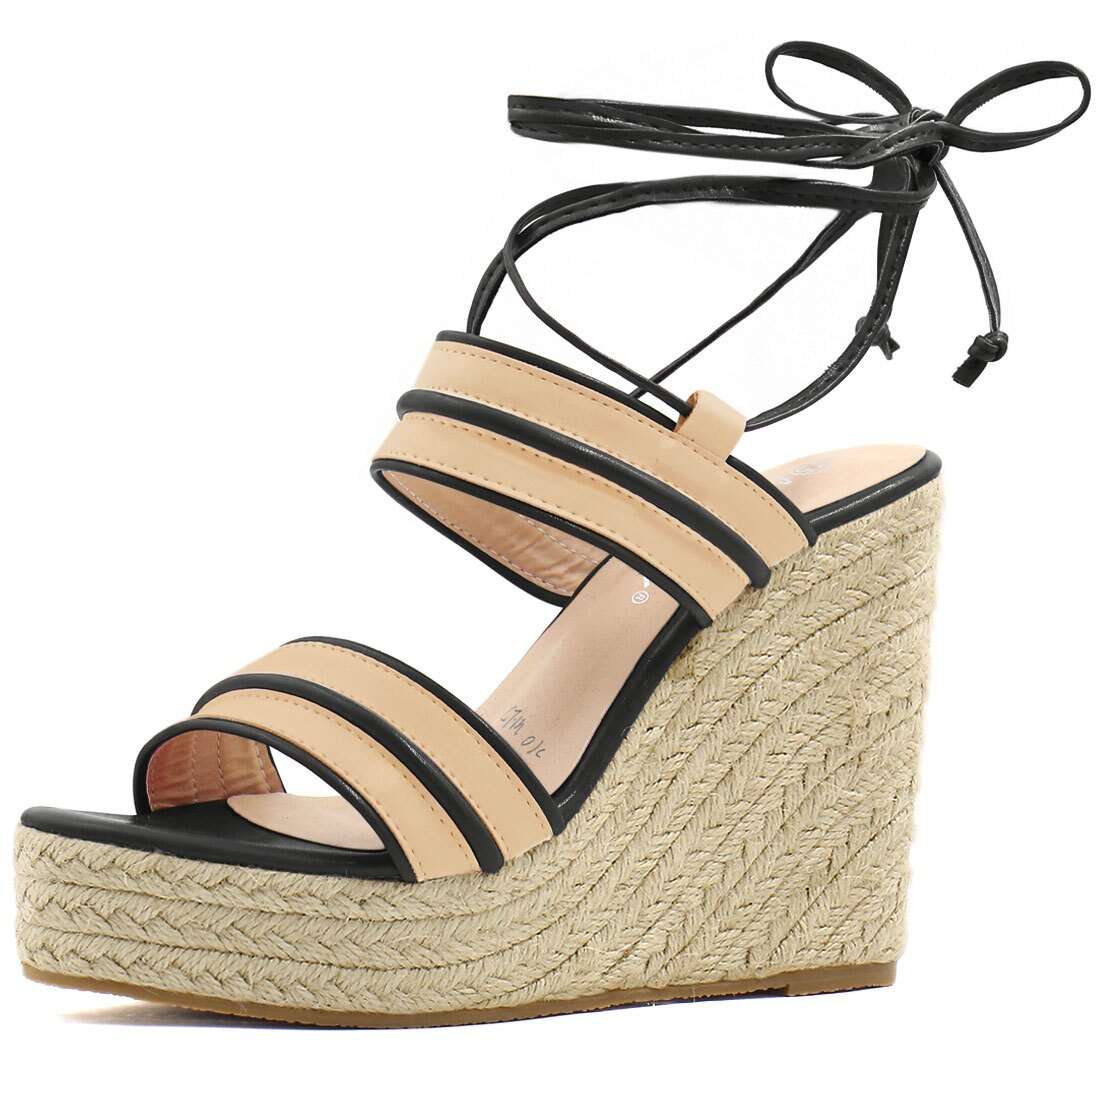 907d337c4540 Rakuten Home · Unique Bargains. 24-1  Women Striped Ankle Tie Espadrille  Wedge Sandals Apricot Black US 9